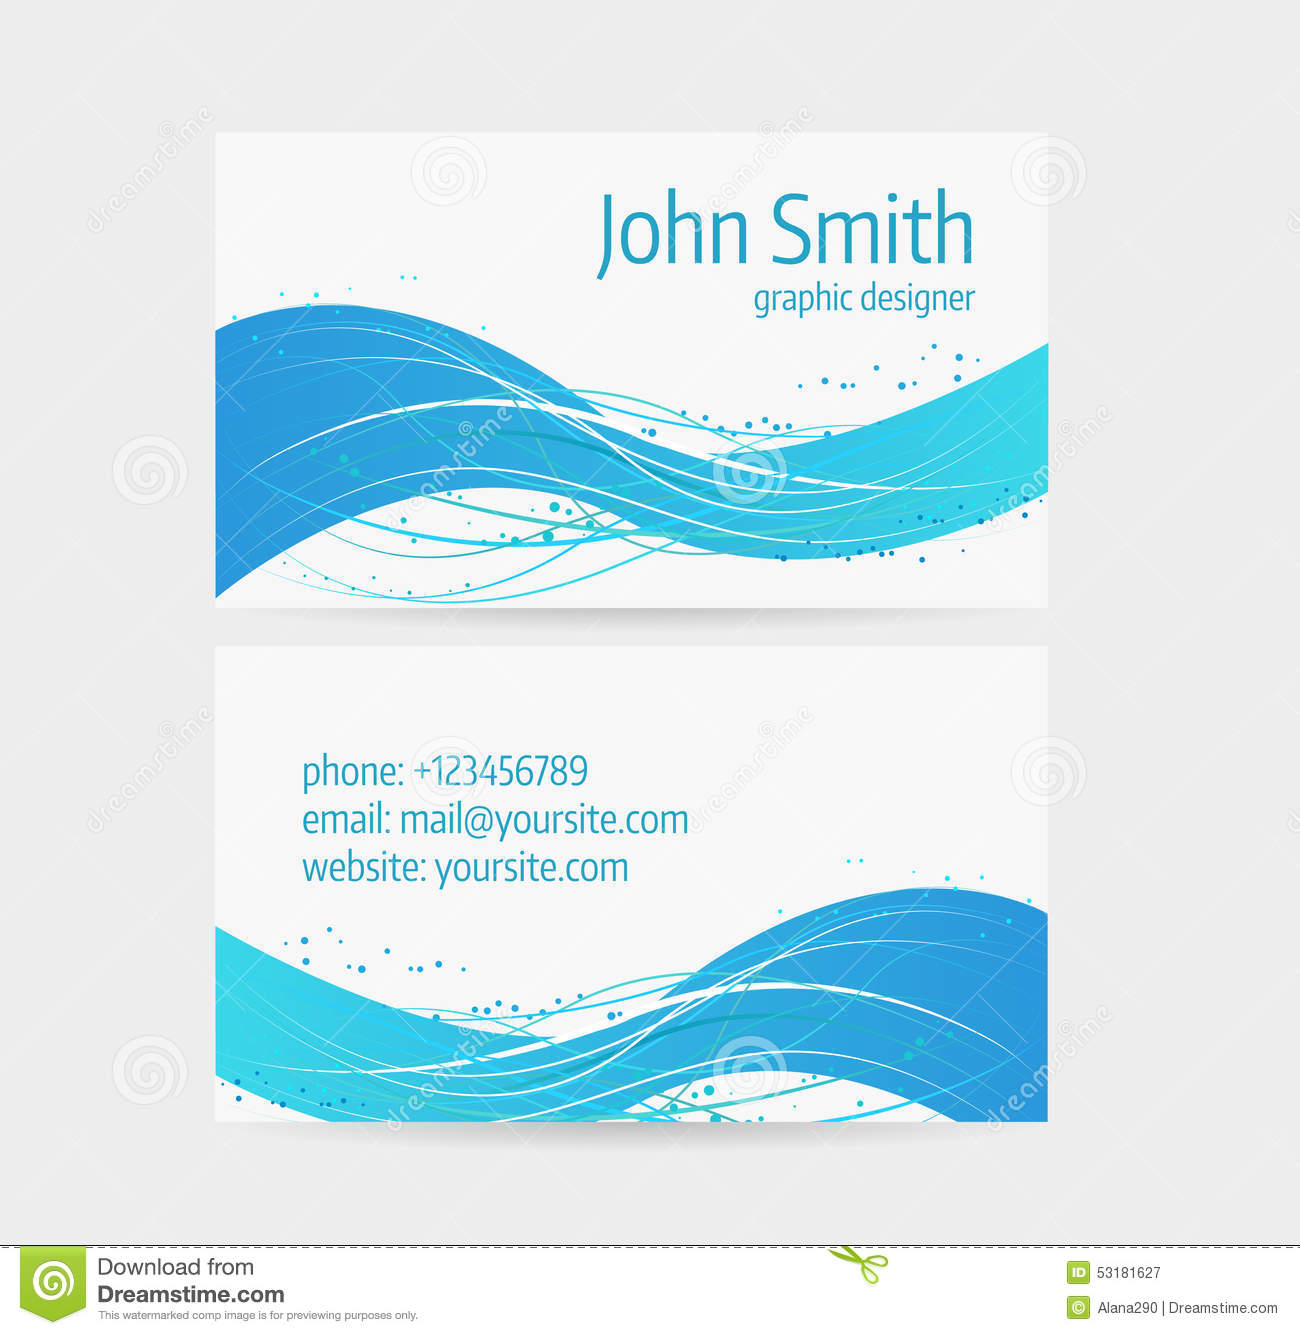 Business card template stock vector. Image of painting - 53181627